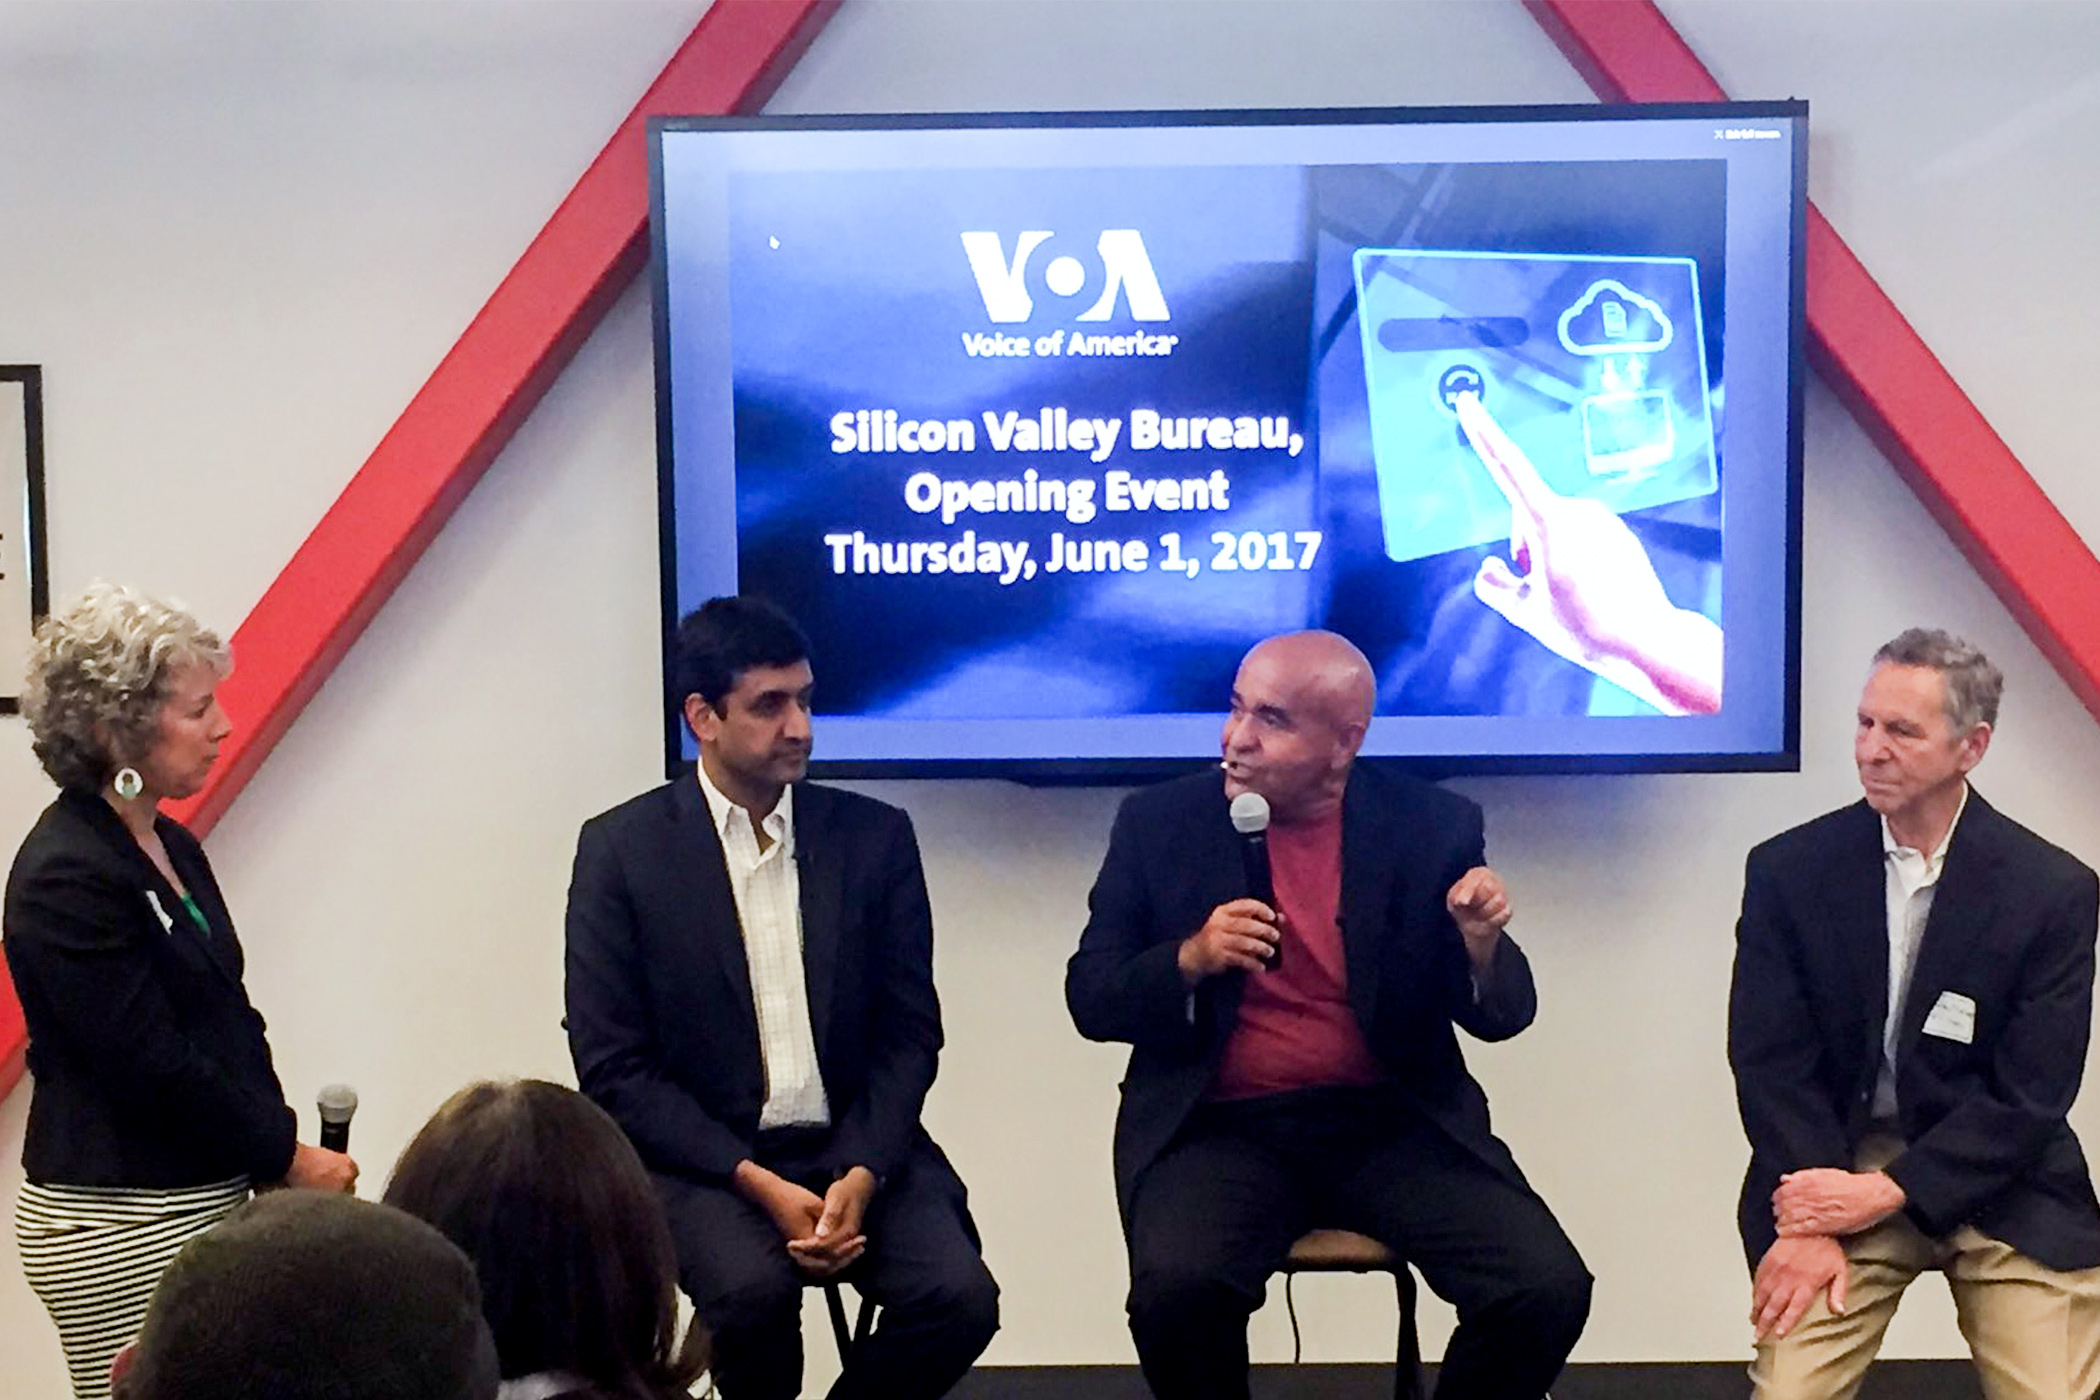 Entrepreneurs, thought leaders debate high tech immigration as VOA opens Silicon Valley Bureau